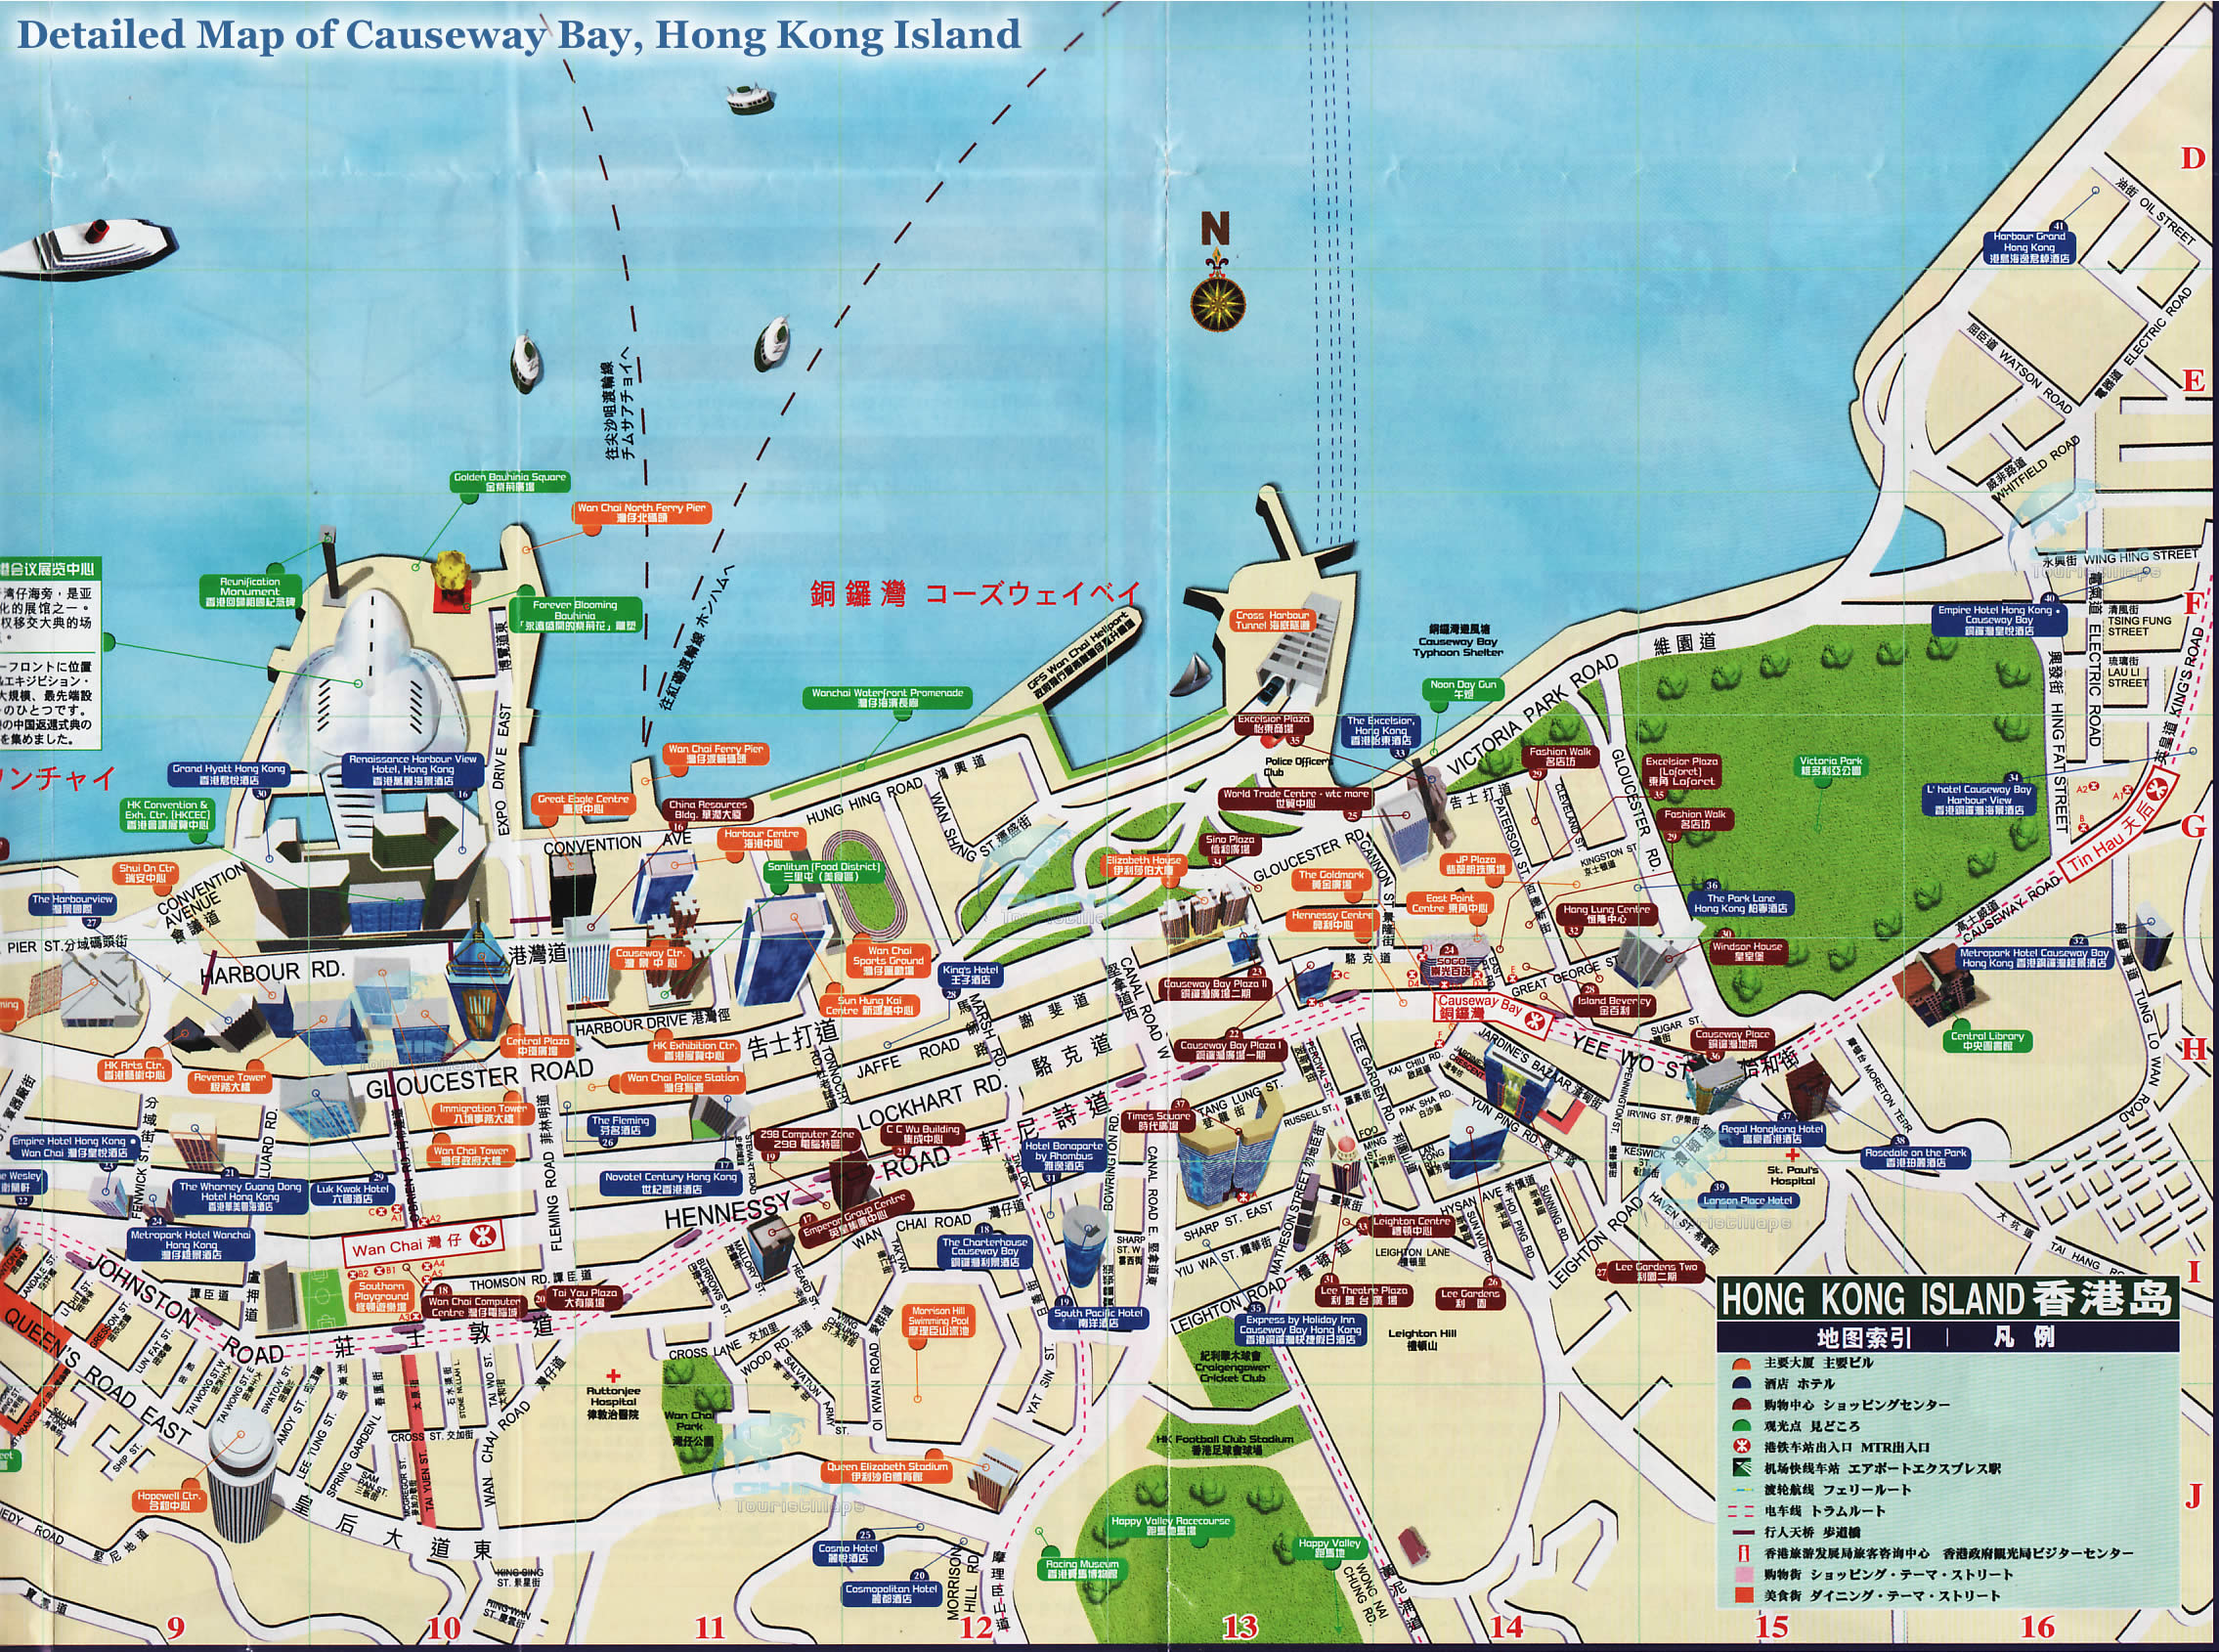 Map Of Causeway Bay Hong Kong Map of Causeway Bay, Hong Kong Island